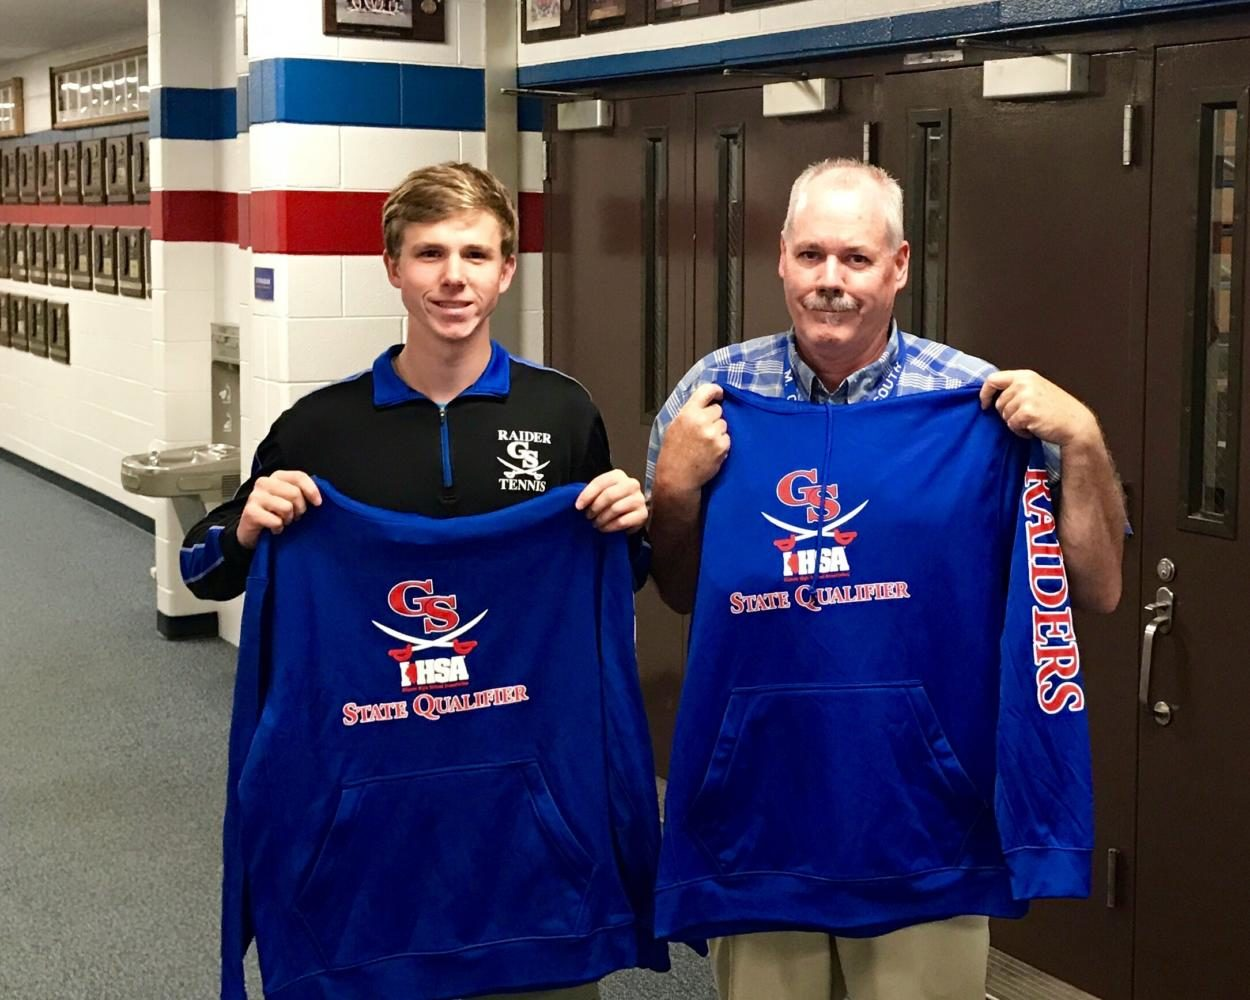 Sophomore+state+qualifier+Alex+Bergendorf+and+Coach+Conrad+proudly+display+their+new+sweatshirts.+%28Photo+by+Tim+Carlson%29